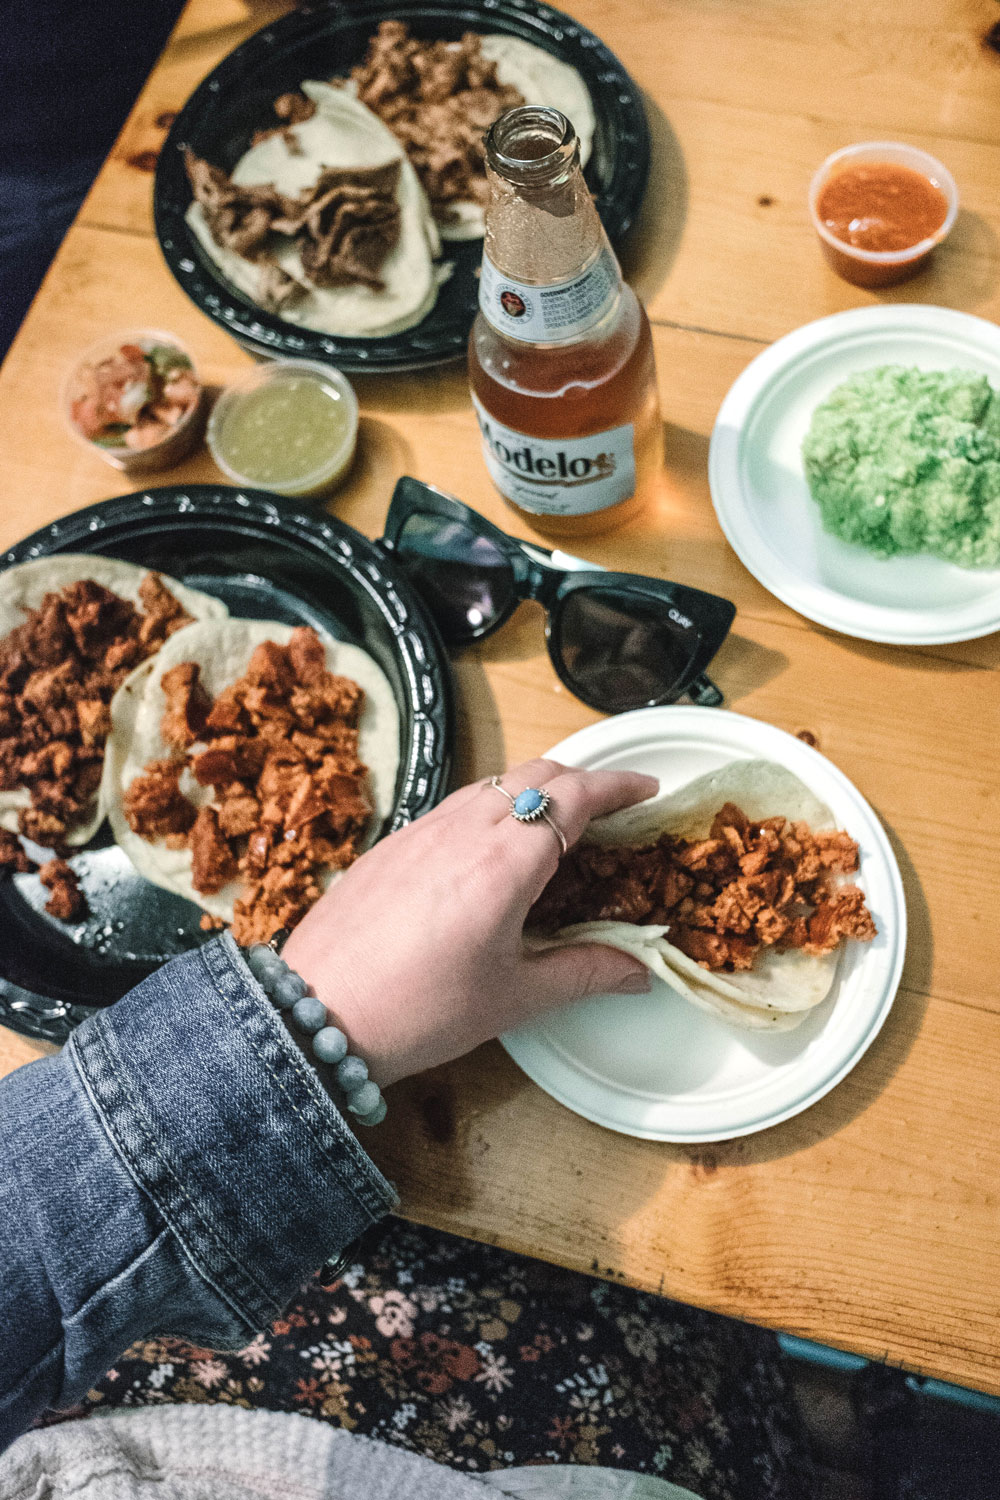 la super rica tacqueria review by To Vogue or Bust